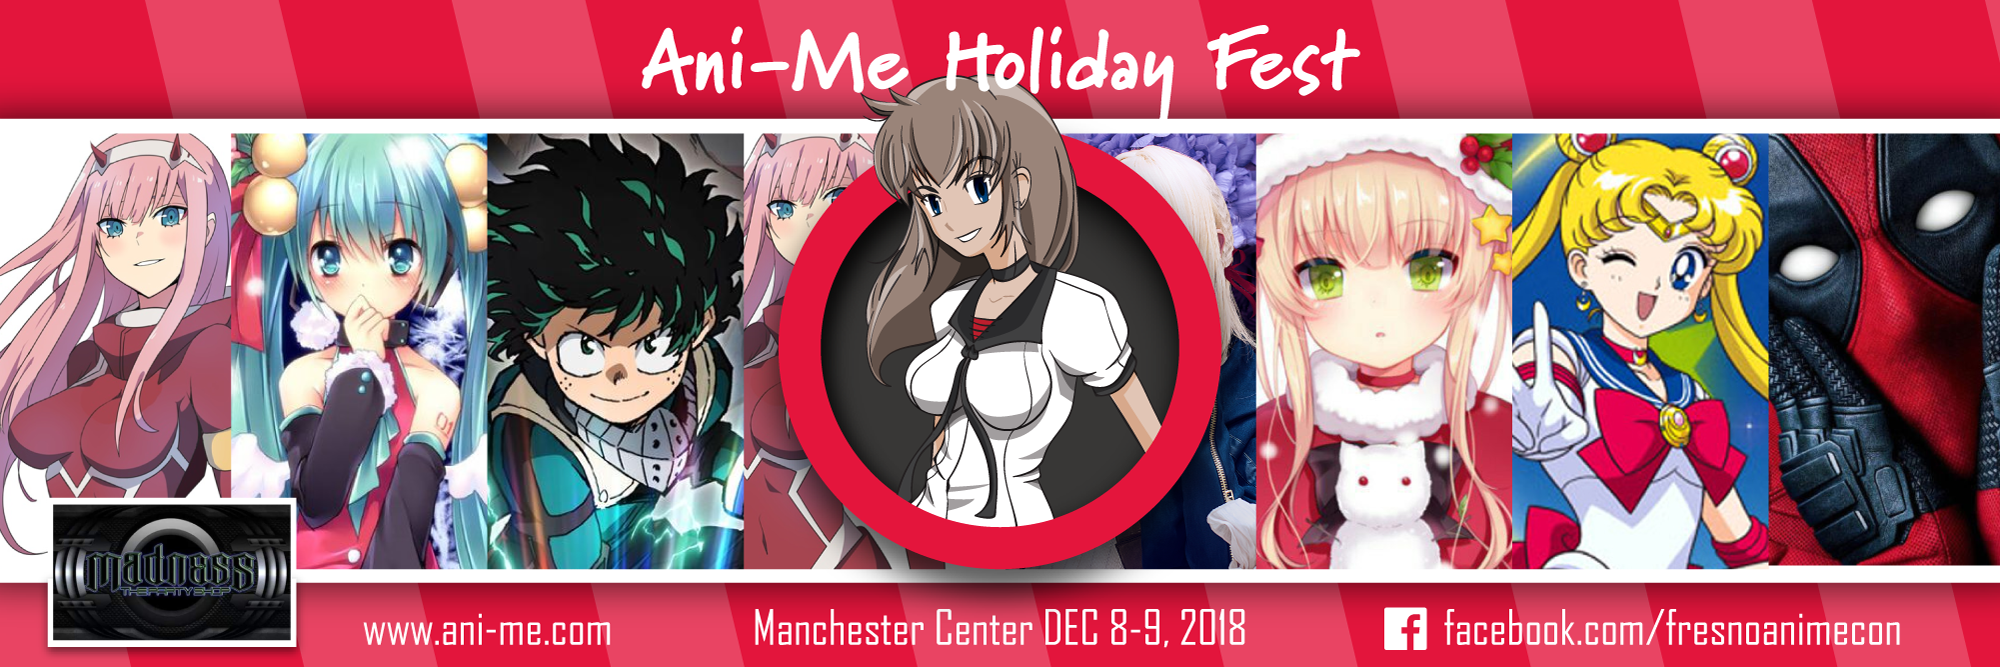 Ani-Me Holiday Fest 2018